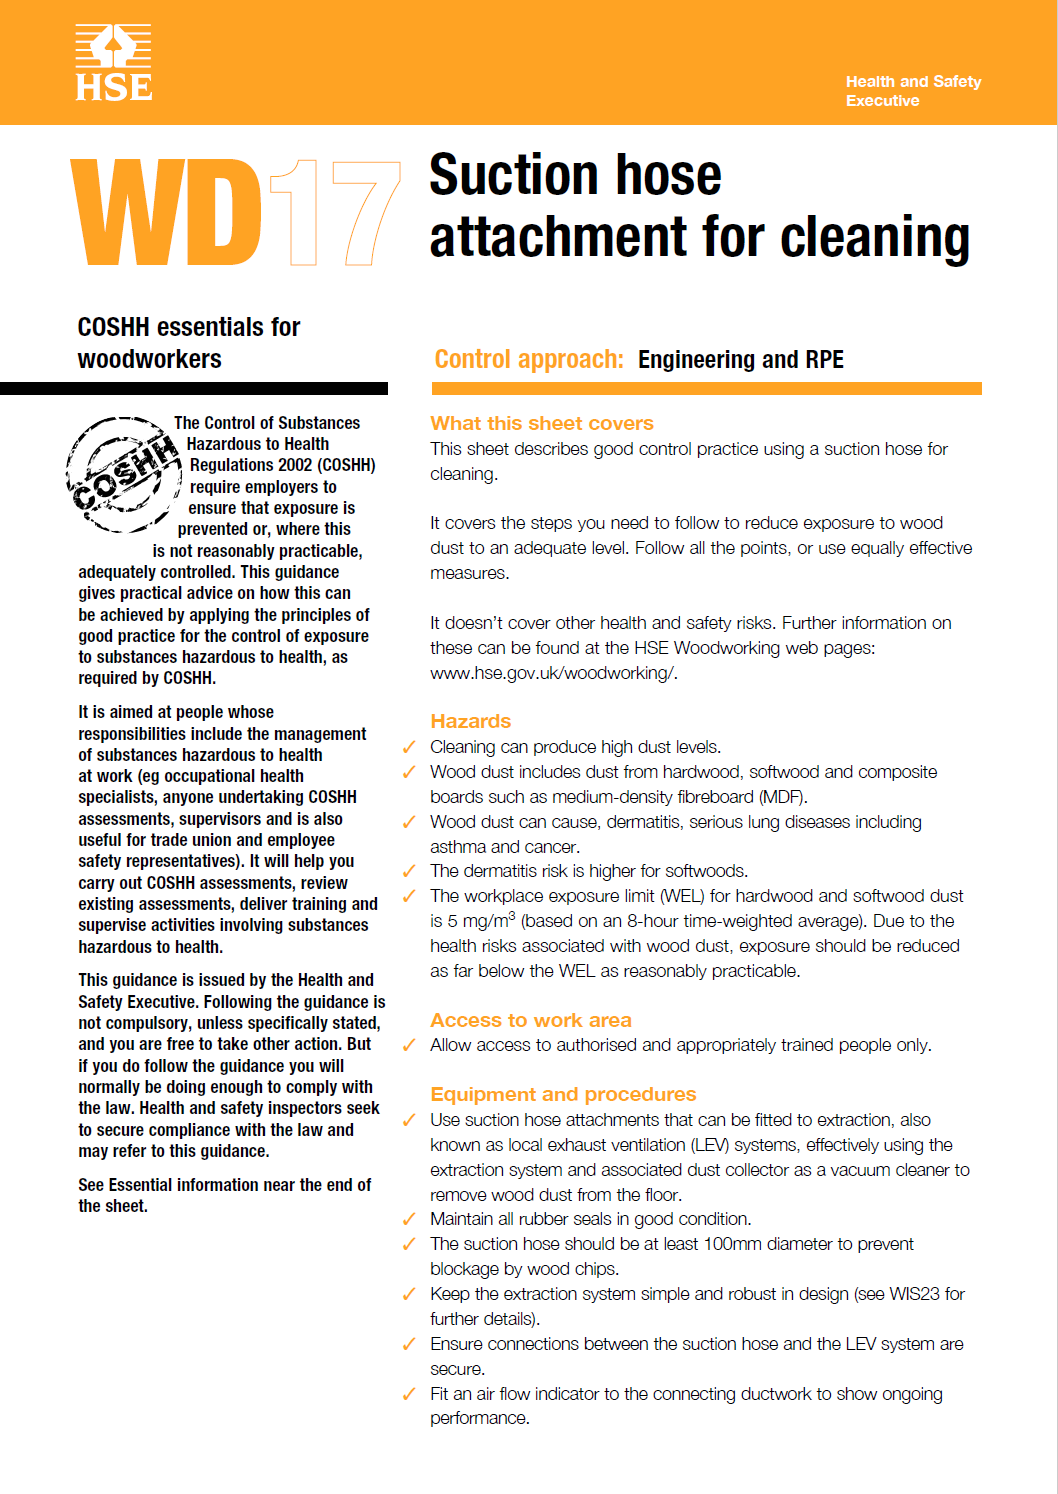 WD17: Suction hose attachment for cleaning